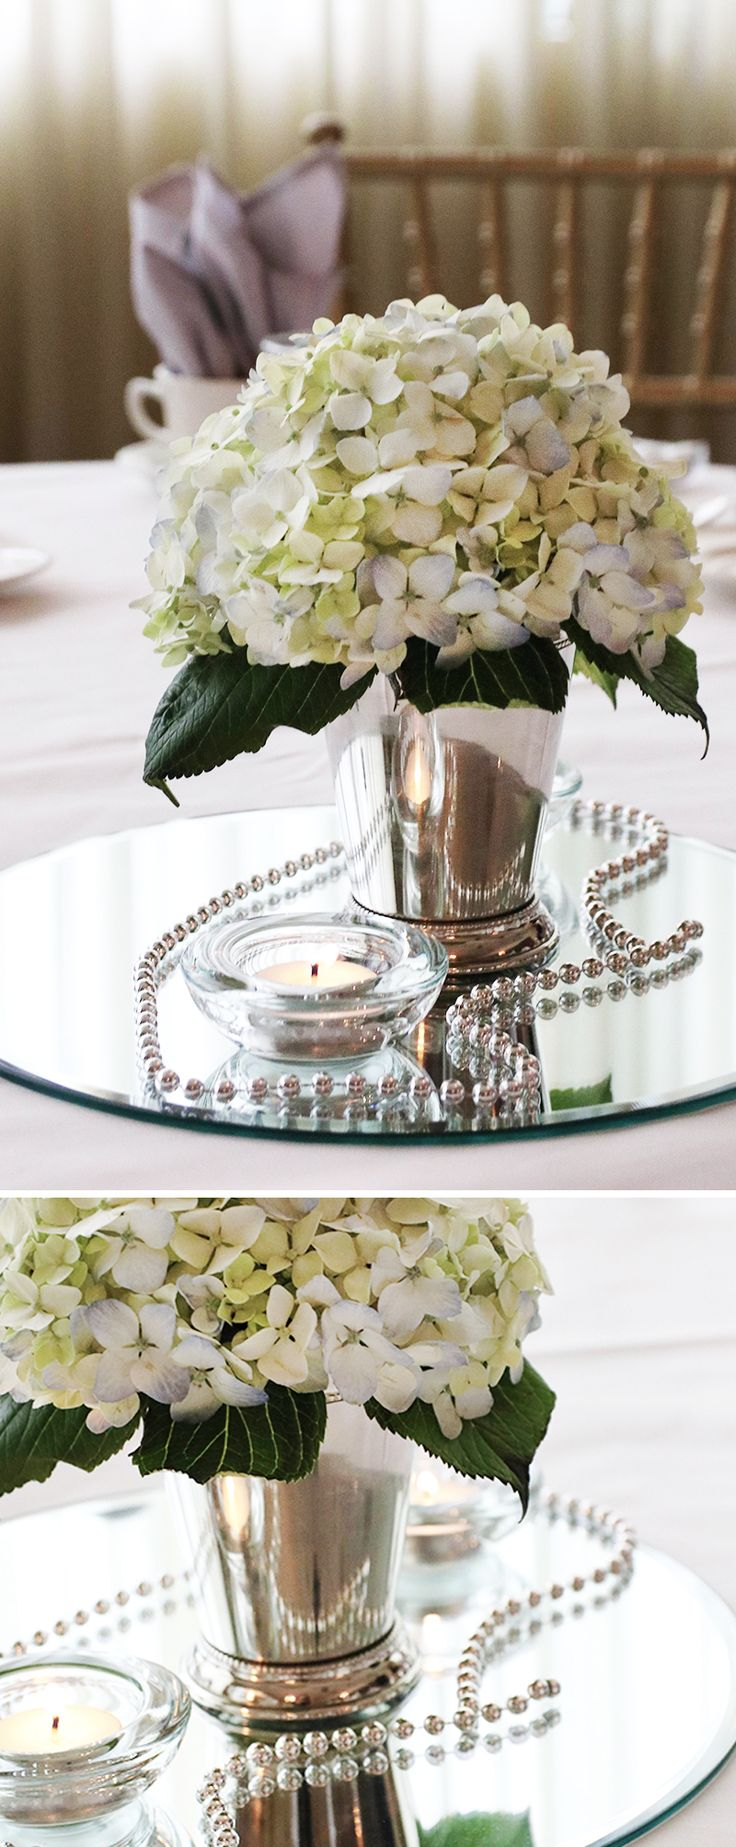 Mint Julep cups aren't just for cocktails. They also double as stunning wedding centerpieces. Available in multiple designs and finishes like silver and copper.